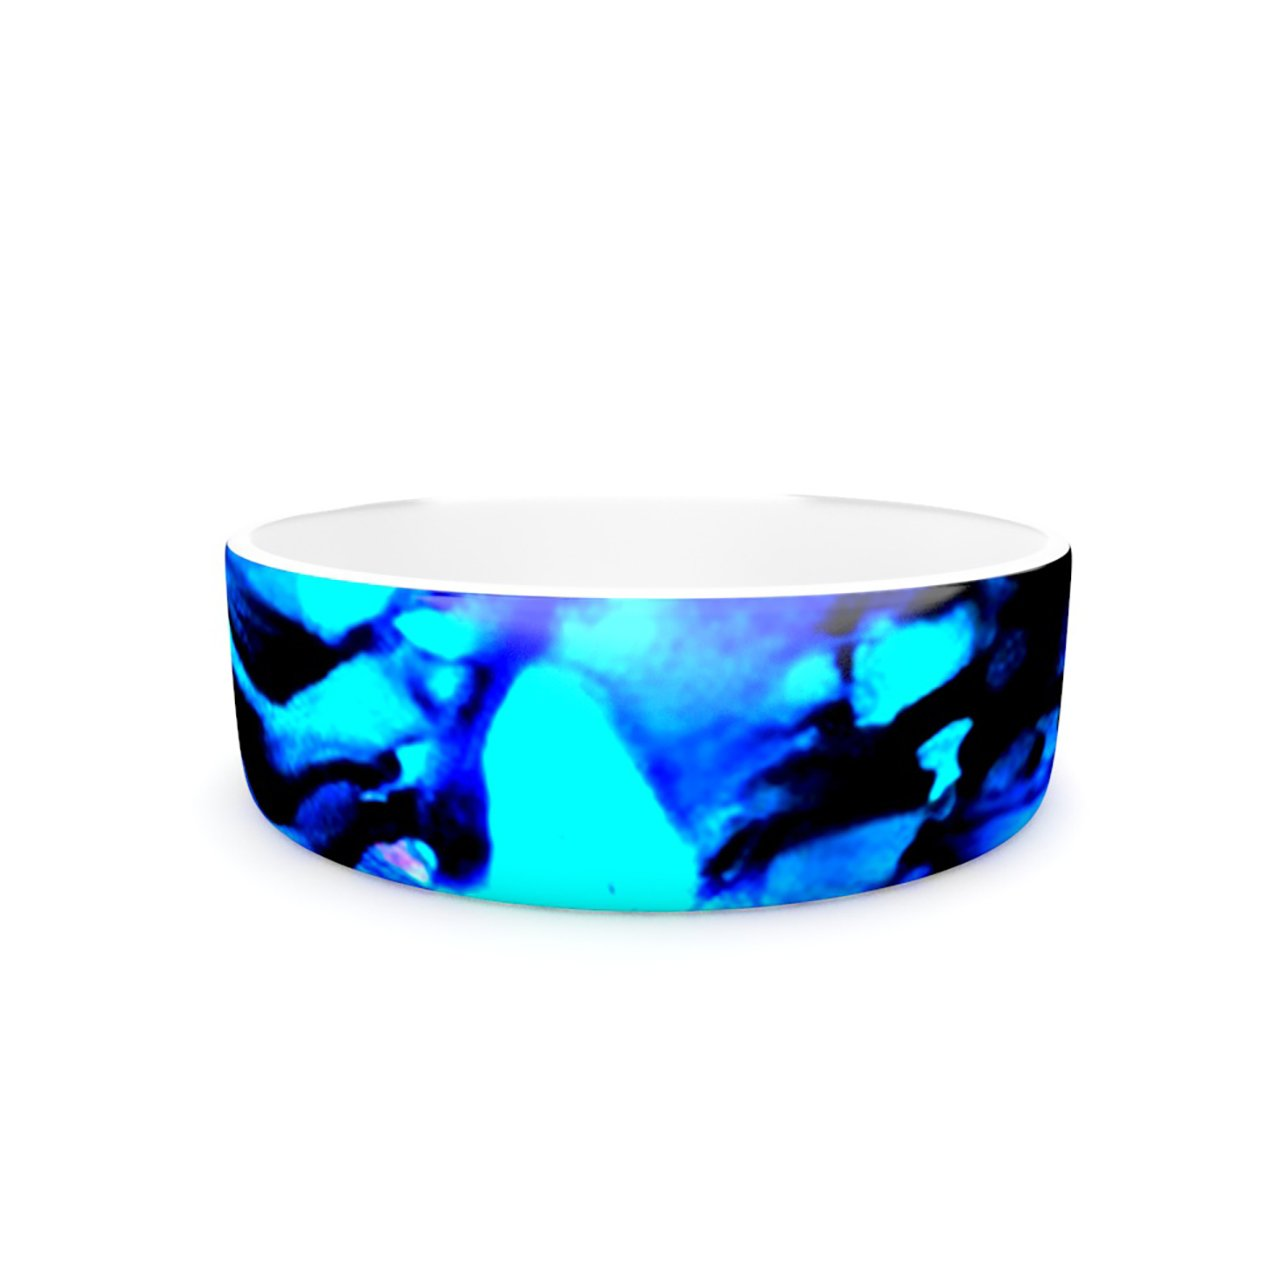 Kess InHouse Claire Day Peace Offering  Pet Bowl, 7-Inch, bluee Aqua